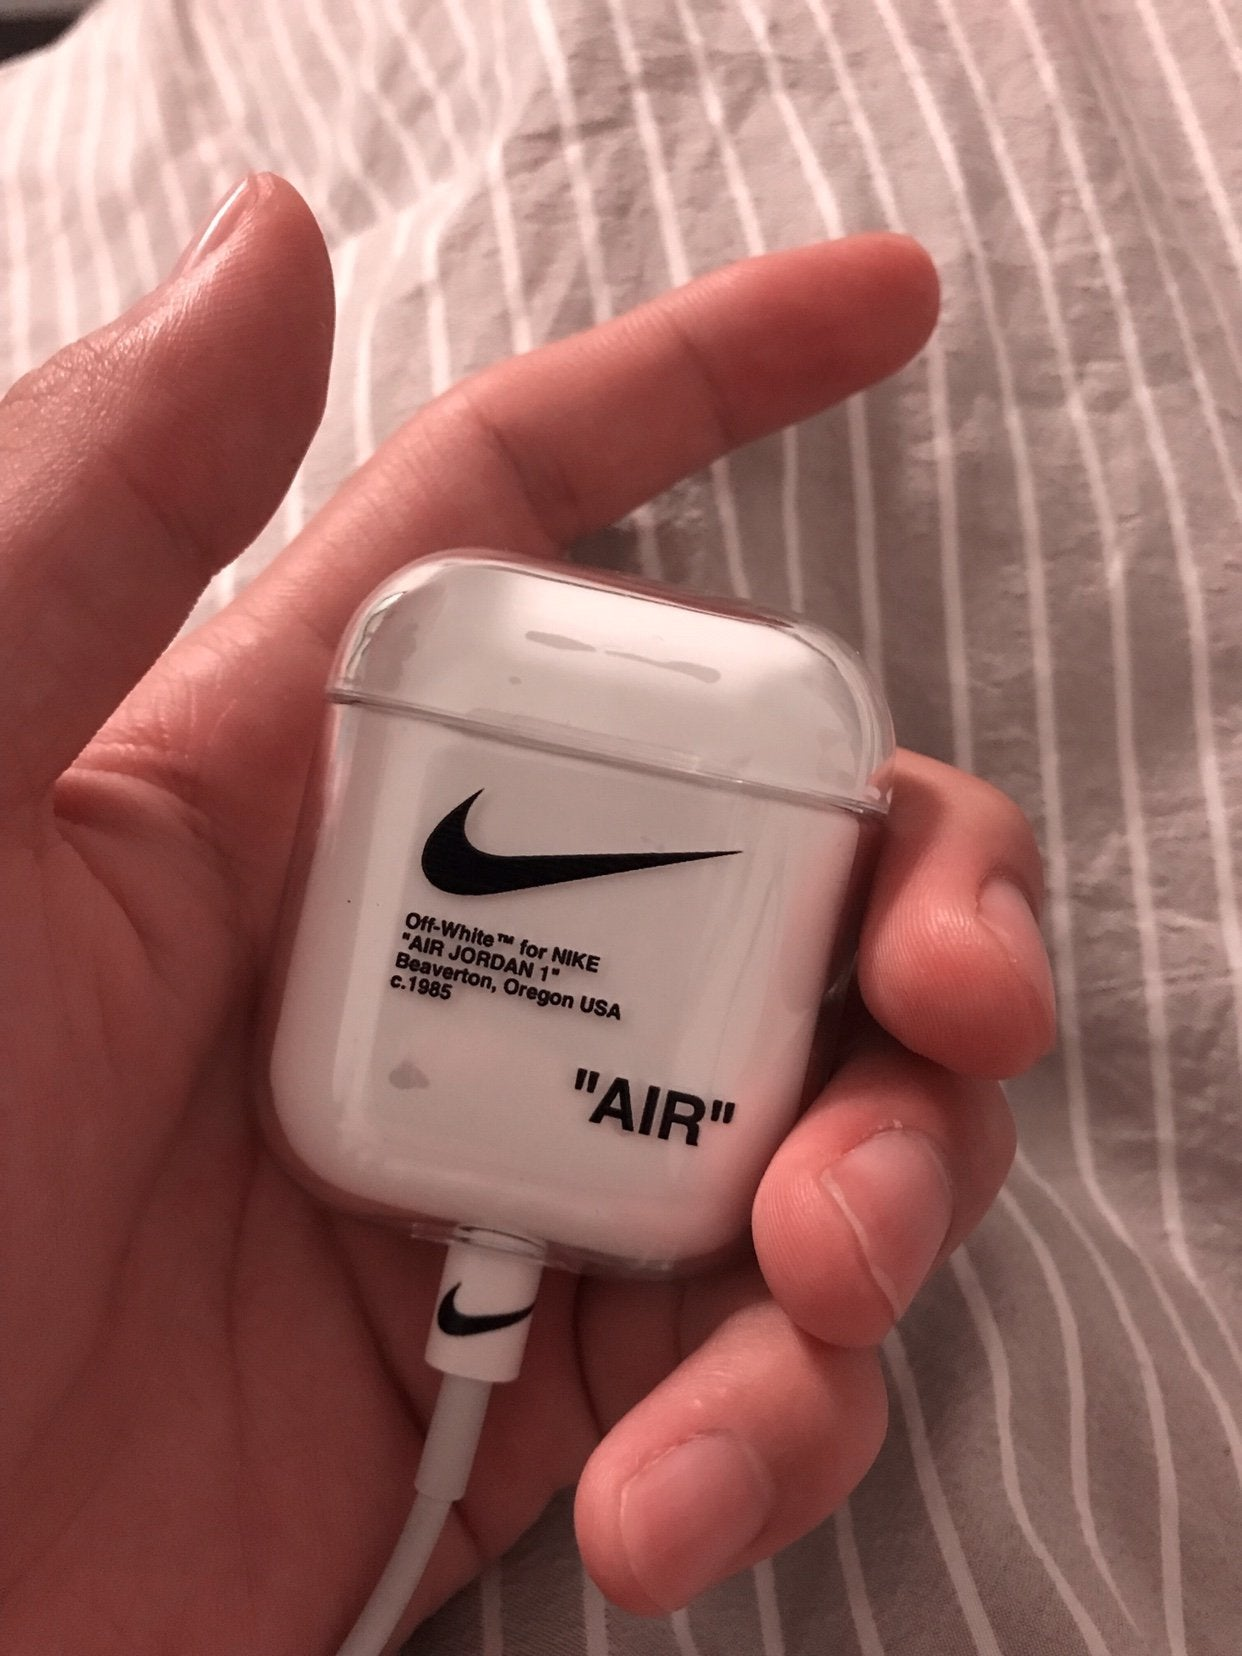 Nike X Off White Ow Style Clear Hard Protective Shockproof Case